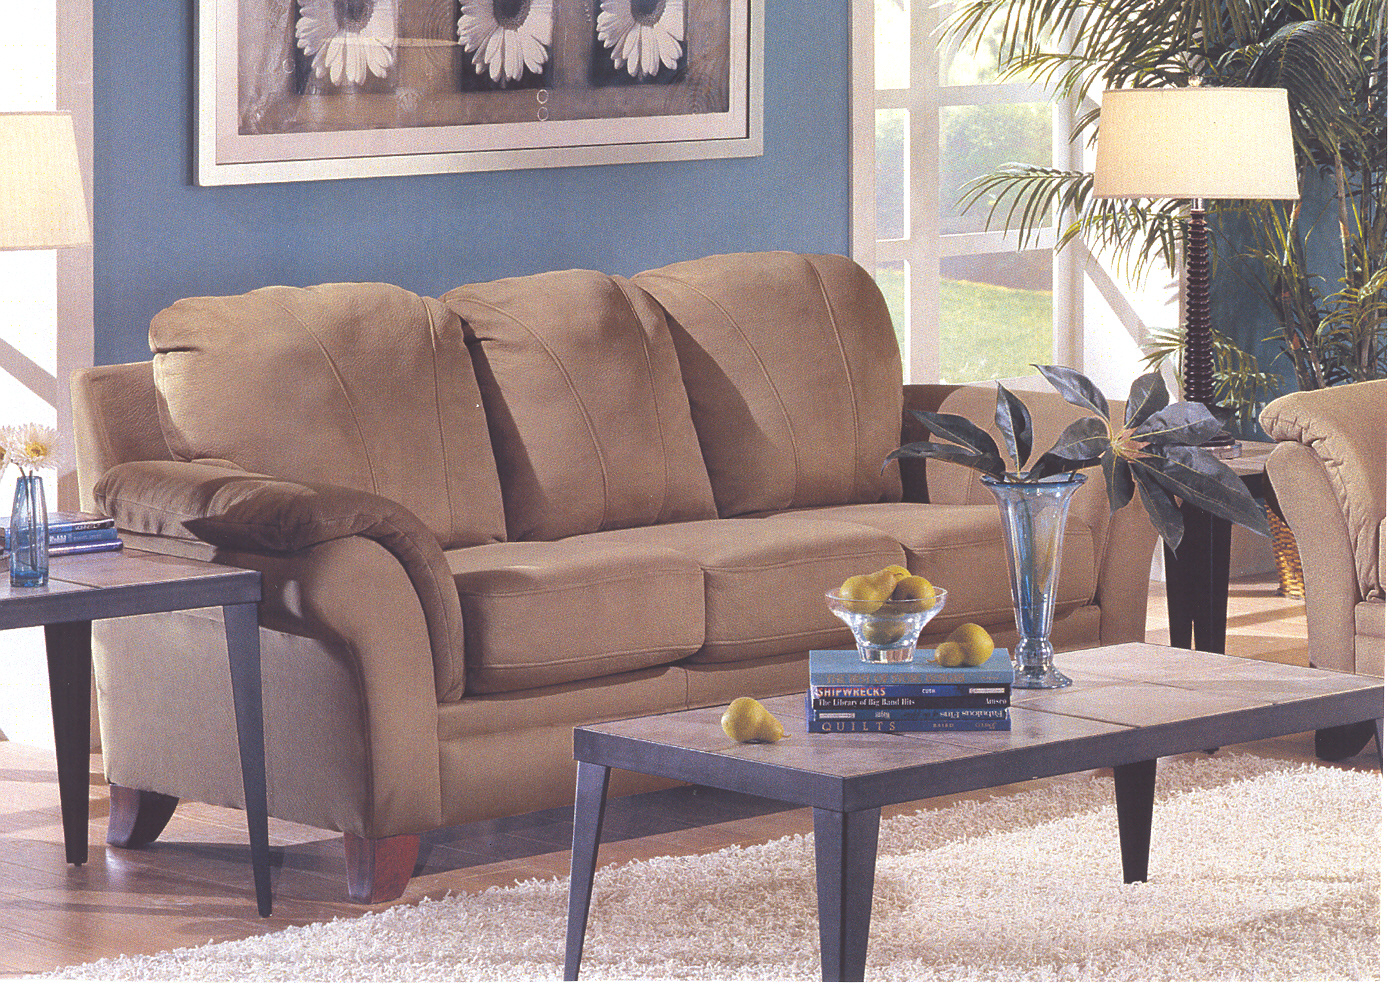 Greenville Furniture By Owner Craigslist Autos Post